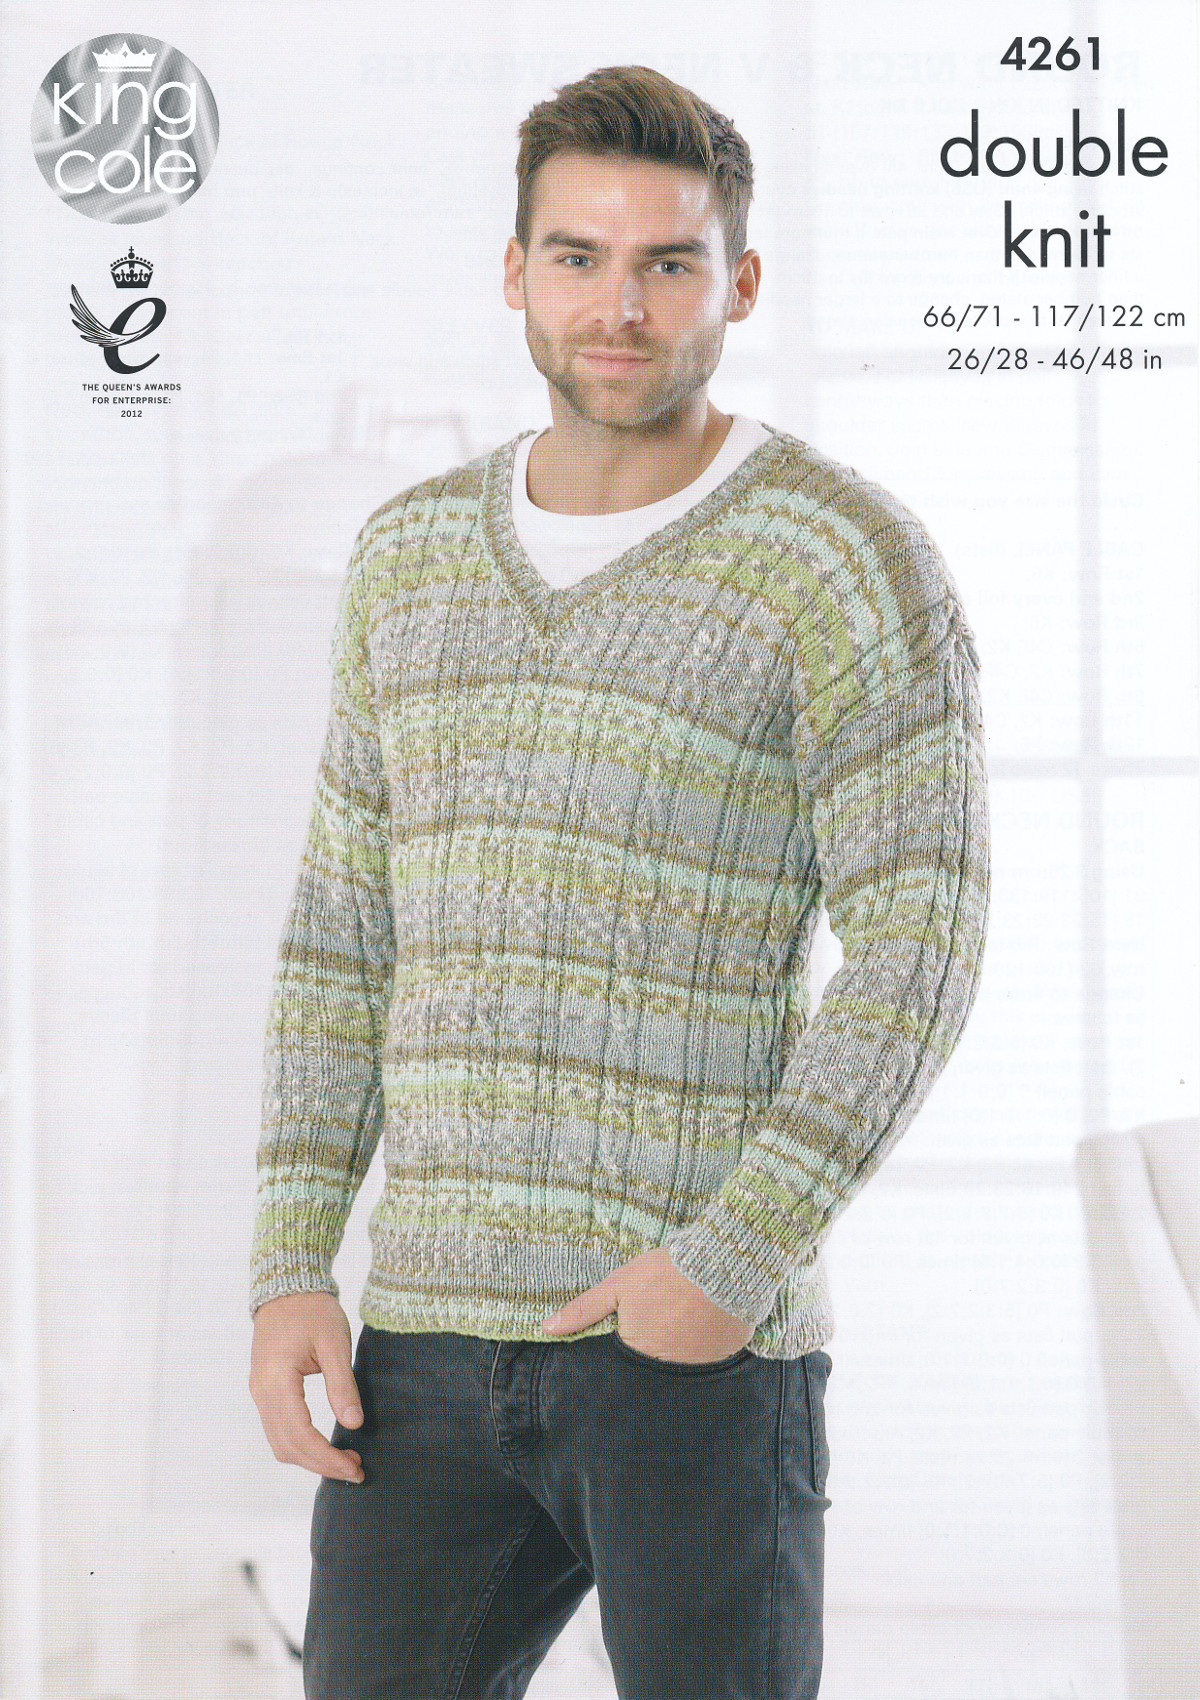 King Cole Mens Double Knitting Pattern Cable Knit Round or V Neck ...